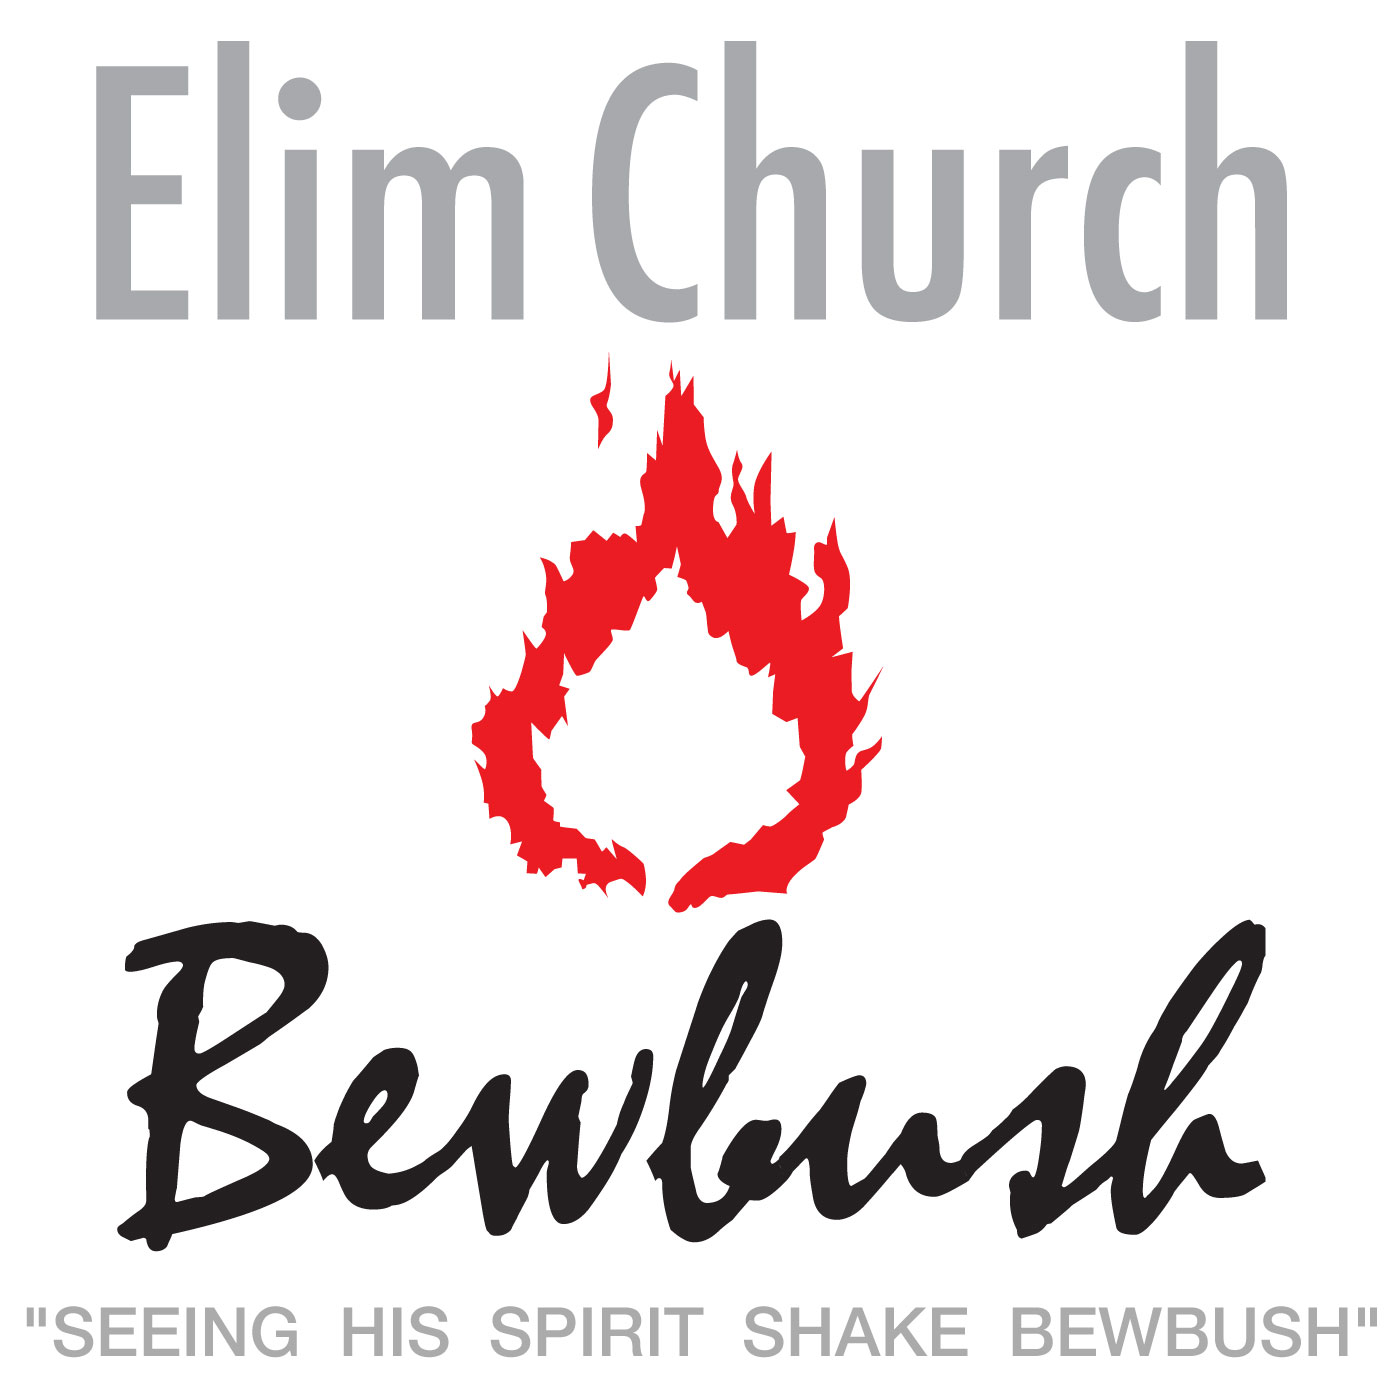 Elim Bewbush | Part of EFGA Charity No. 251549 Podcast